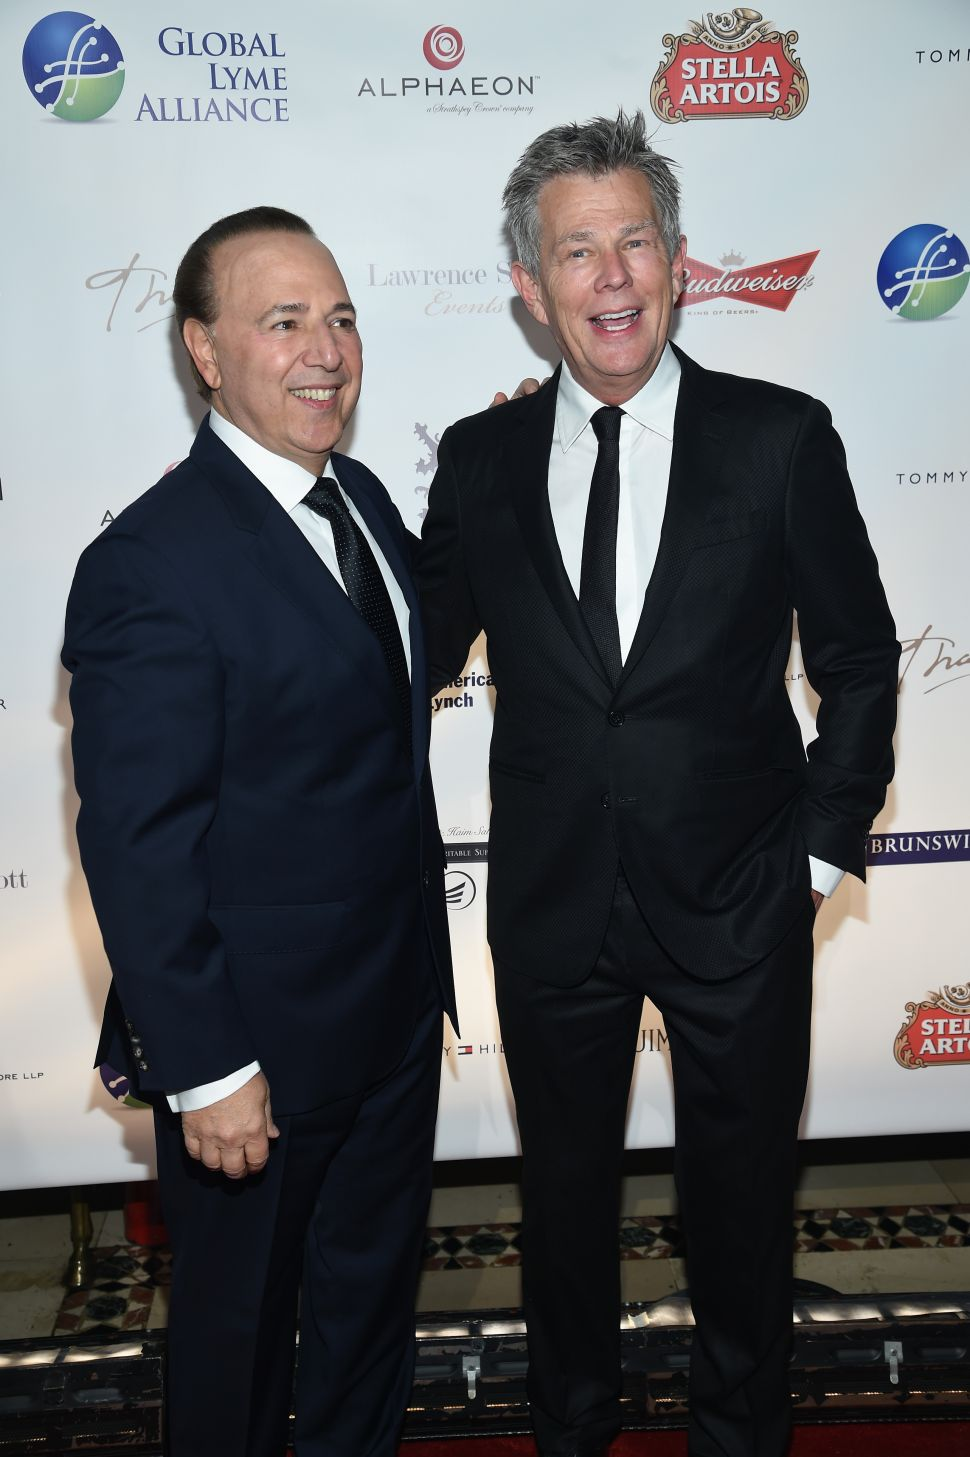 Tommy Motola, David Foster (Photo: Dimitrios Kambouris/Getty Images for Global Lyme Alliance).